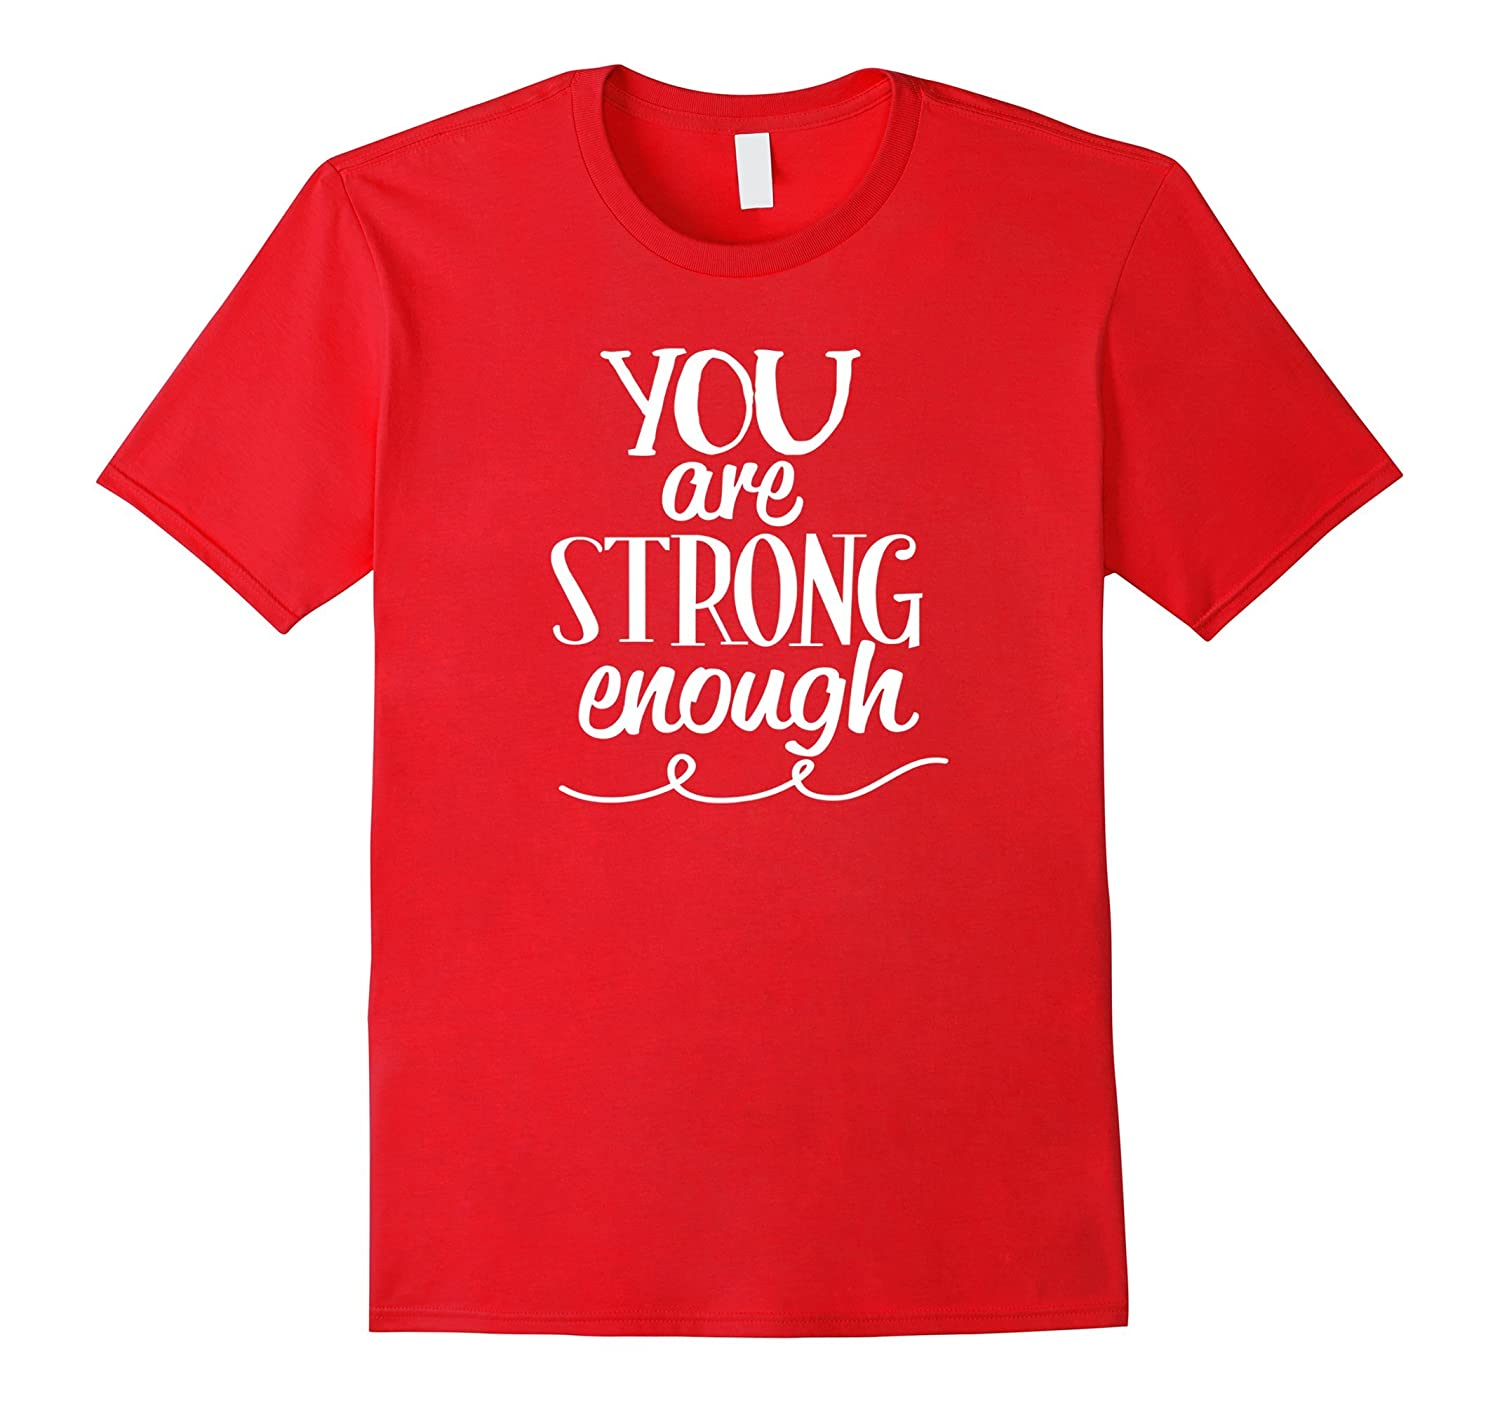 You Are Strong Enough Positive Motivational Self Help Shirt-FL